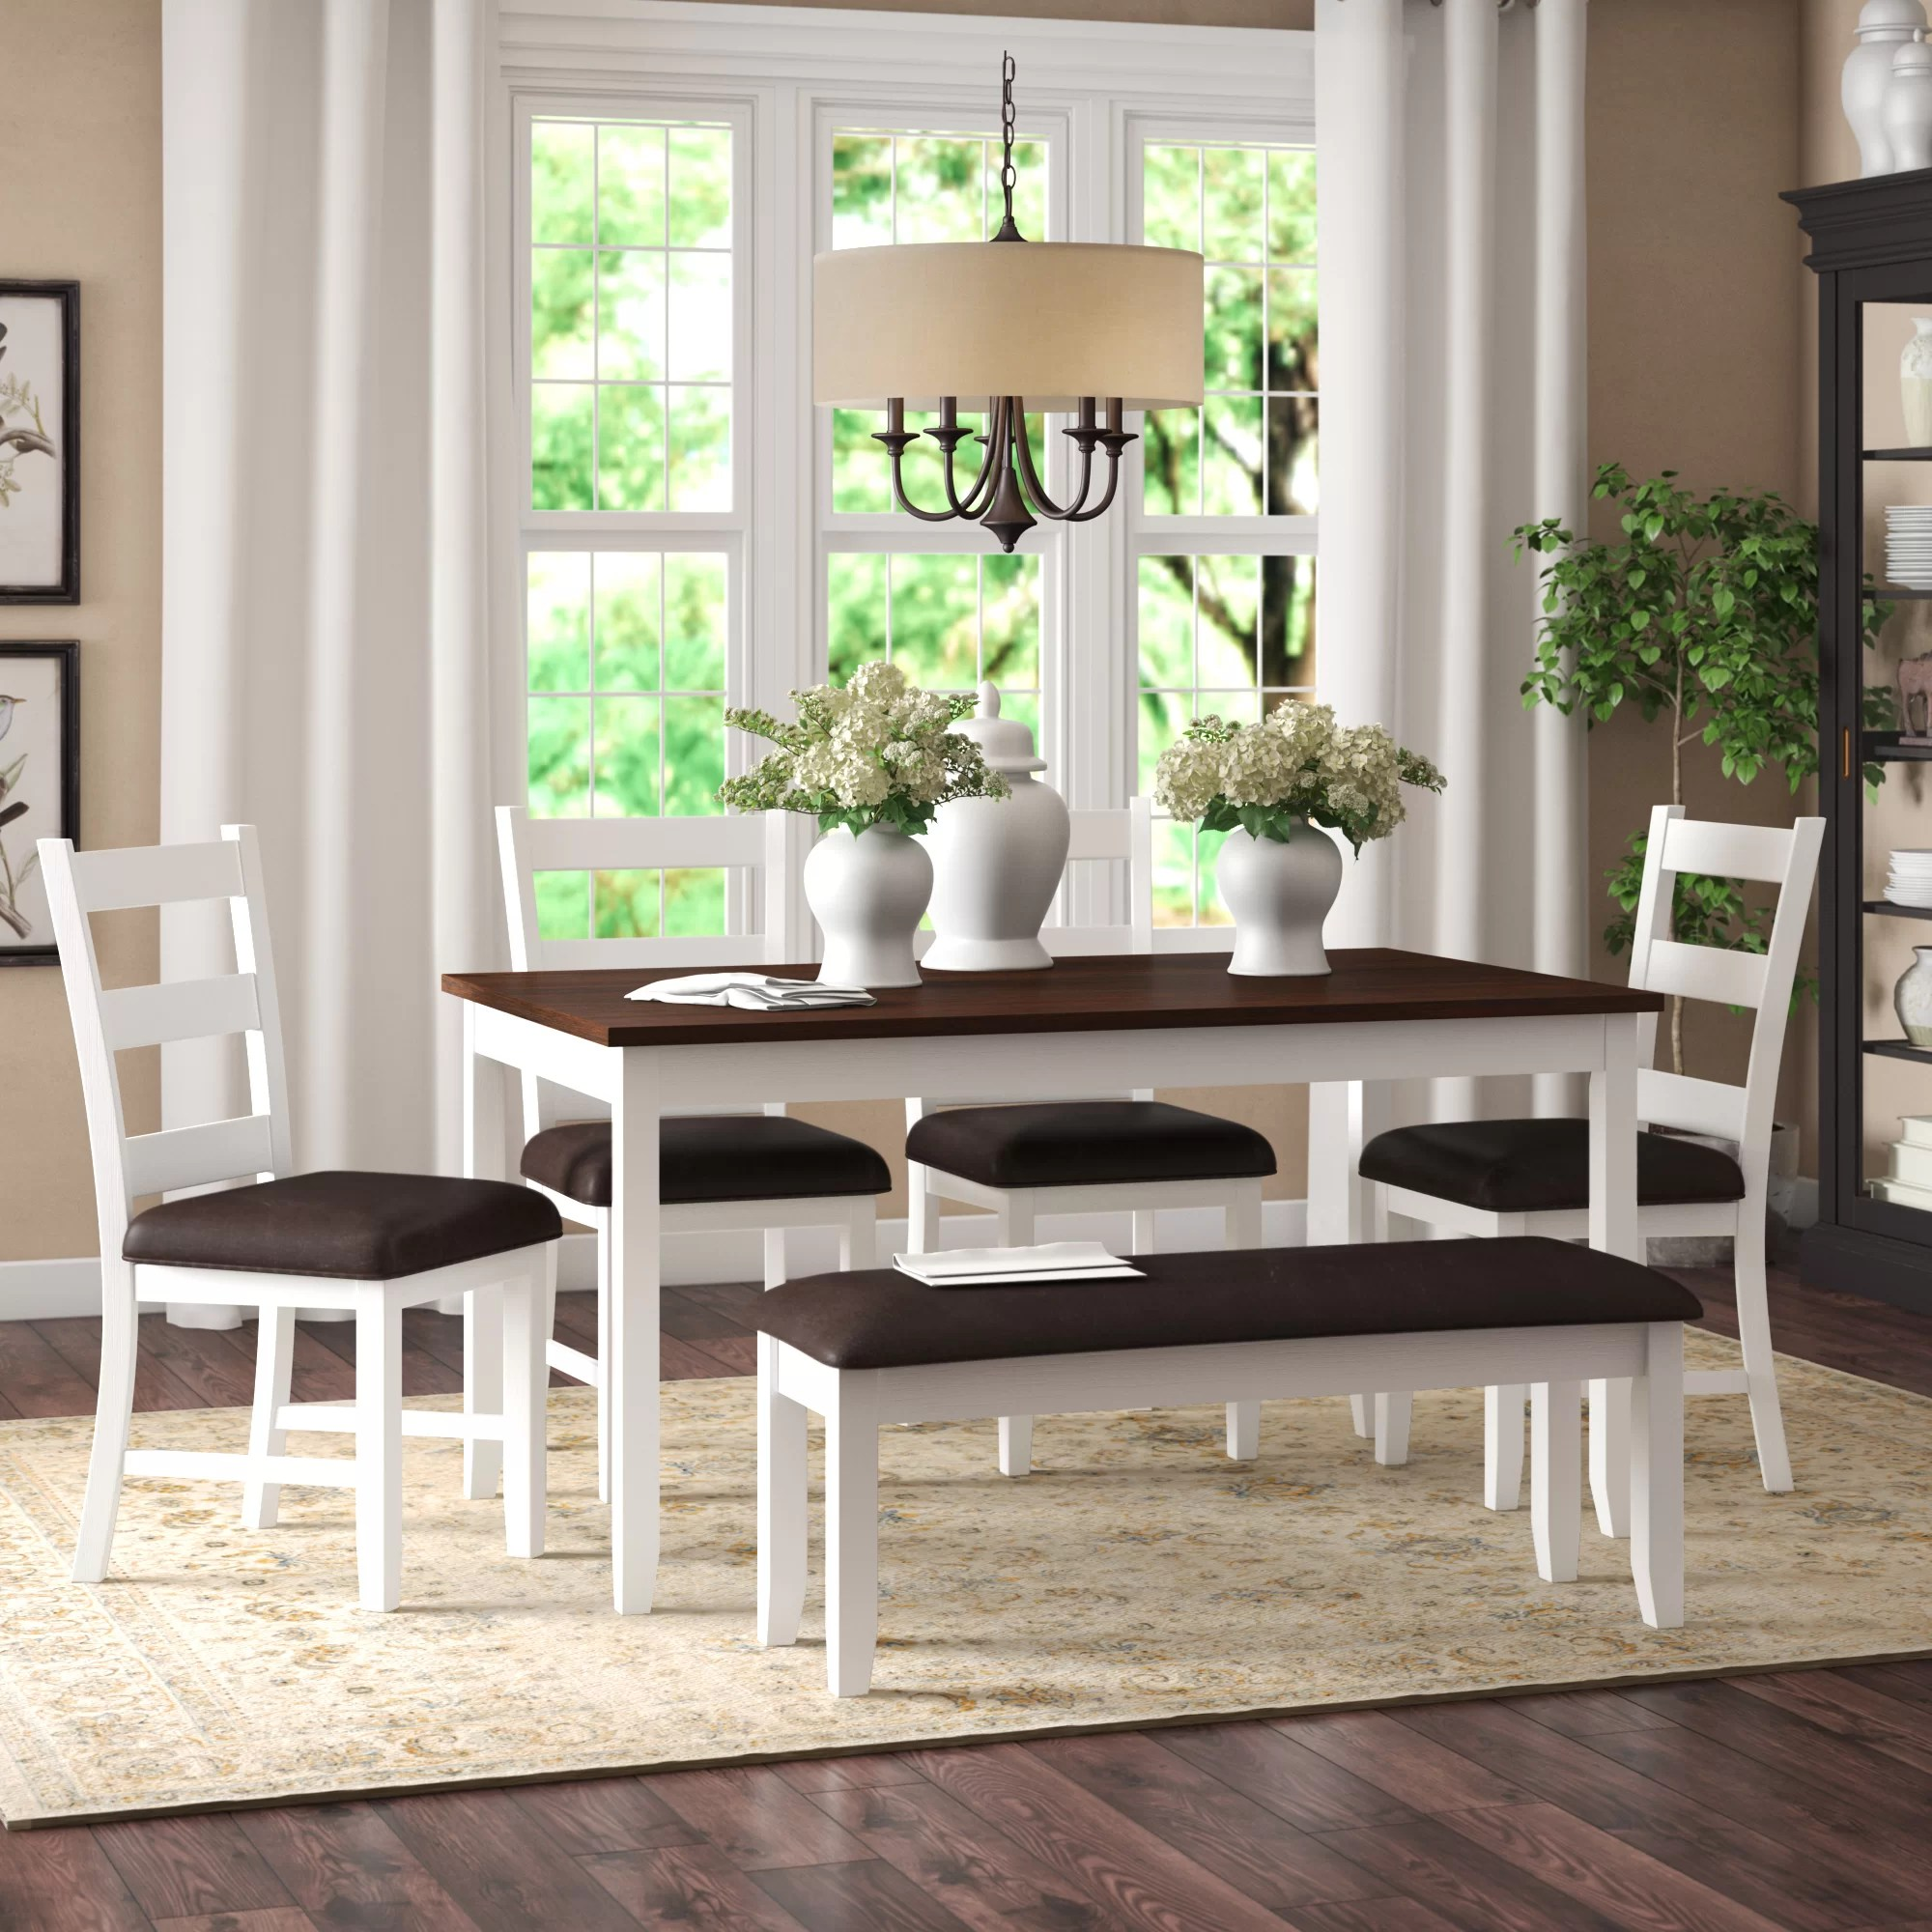 Alcott Hill Mavis Acacia Solid Wood Breakfast Nook Dining Set Reviews Wayfair